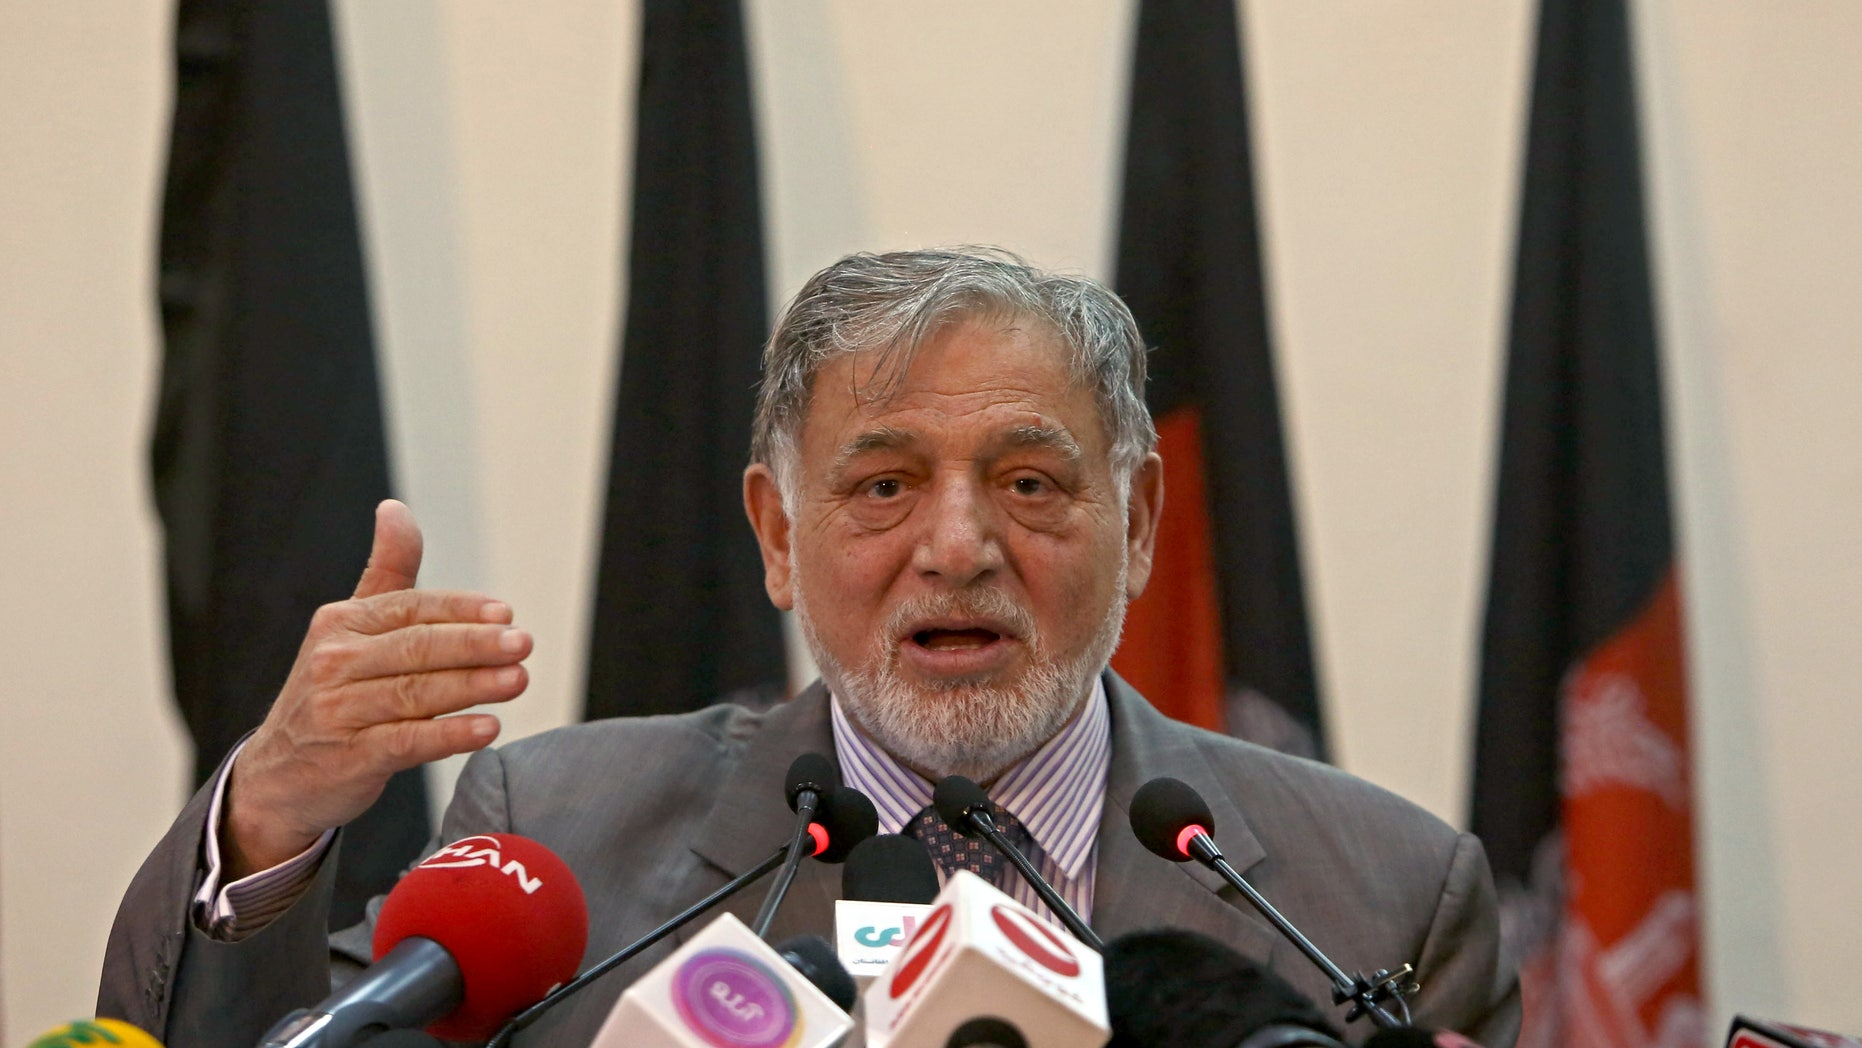 July 7, 2014 - Ahmad Yousuf Nouristani, chairman of the Independent Election Commission, speaks in Kabul, Afghanistan. Aghanistan's election commission says that former finance minister Ashraf Ghani Ahmadzai has the lead in preliminary results from a disputed presidential runoff vote.